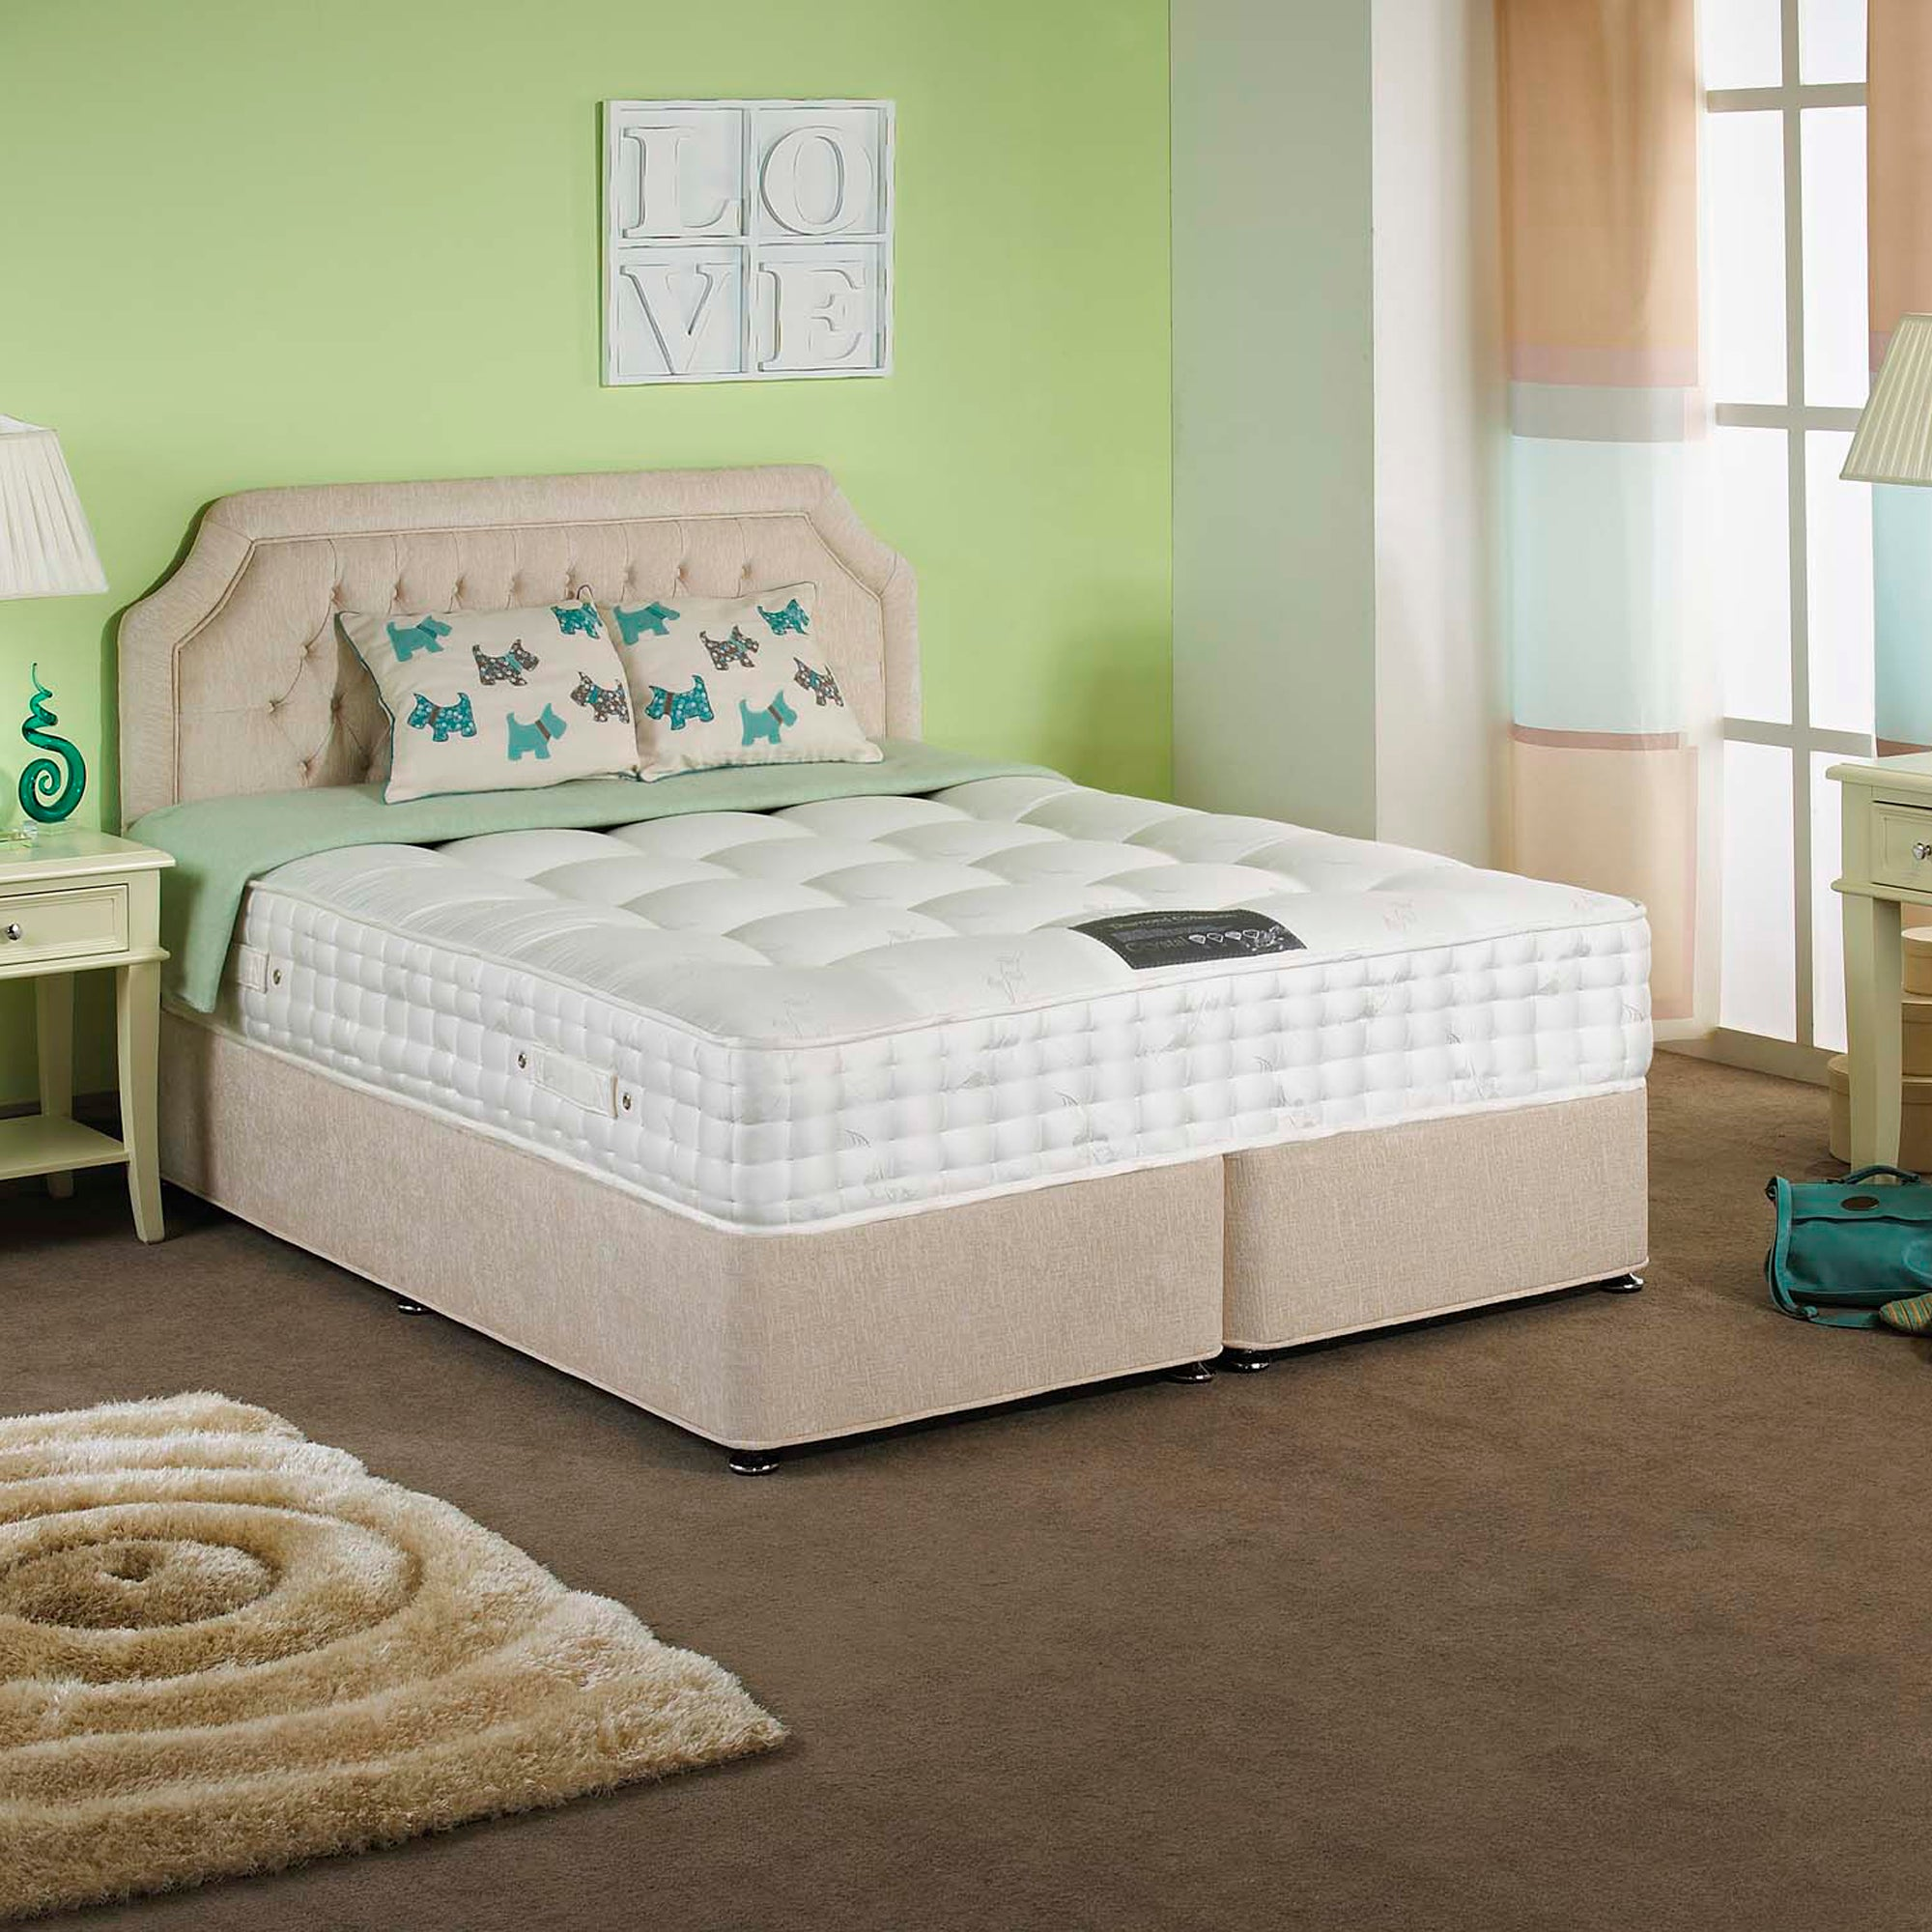 Stratford Padded Divan Set with 4 Drawers